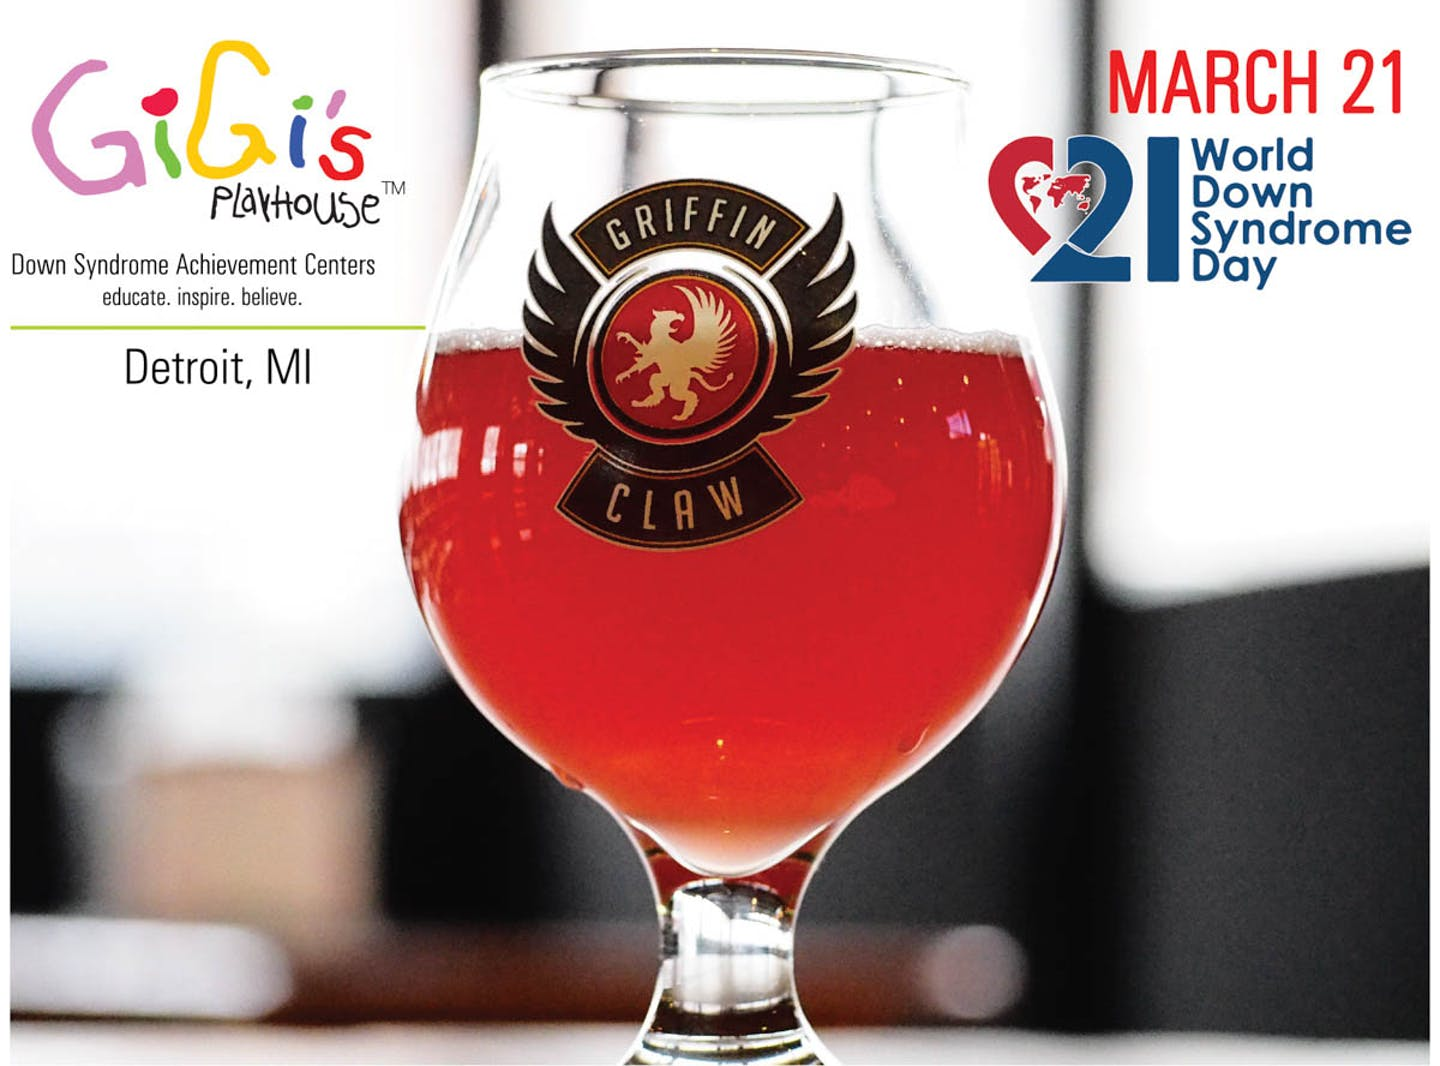 Gigi's Playhouse World Down Syndrome Day Logo with Beer